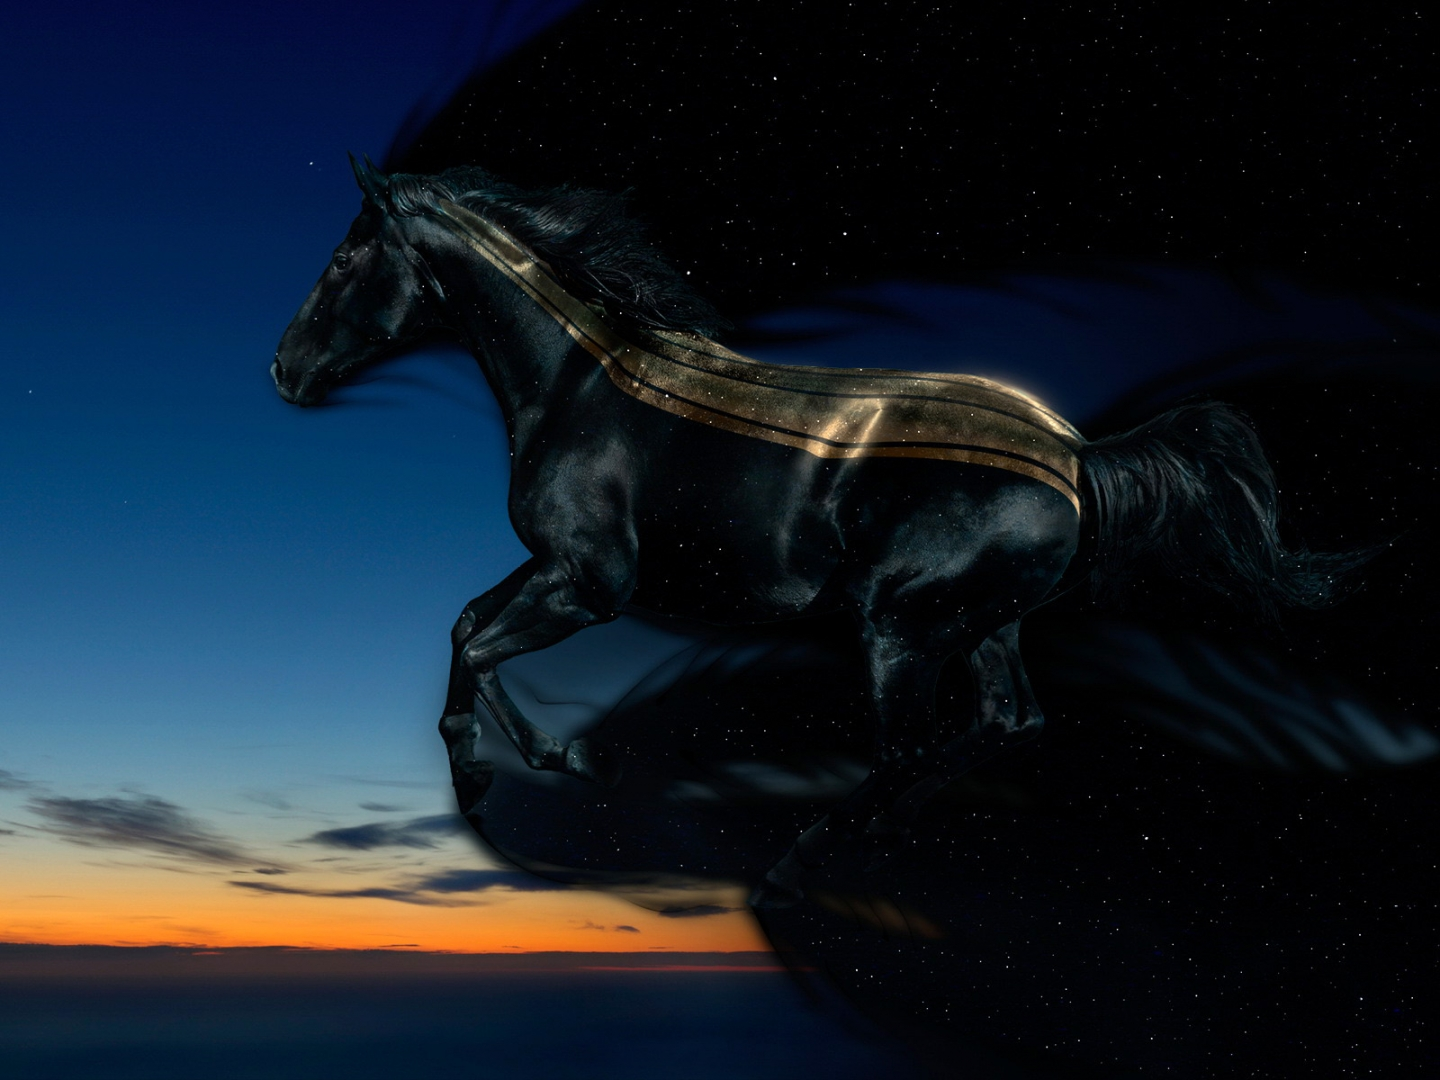 Good   Wallpaper Horse Night - 1440_night_horse_wallpaper  You Should Have_41540.jpg